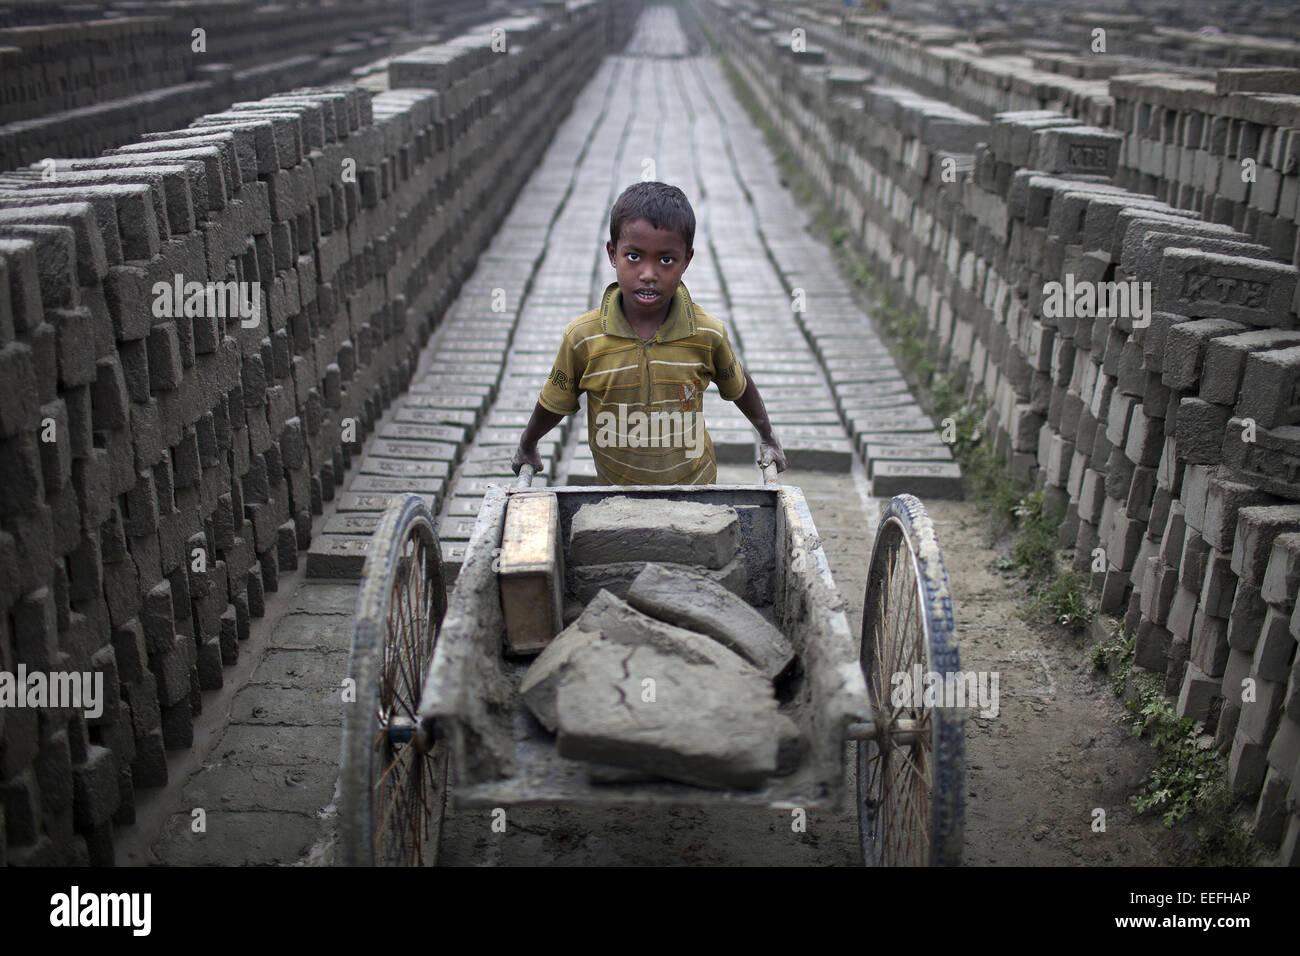 child labor in dhaka city Child labor in dhaka city  child labor in dhaka city child labor in dhaka city the report is based on secondary data and current socio economic situation of dhaka.